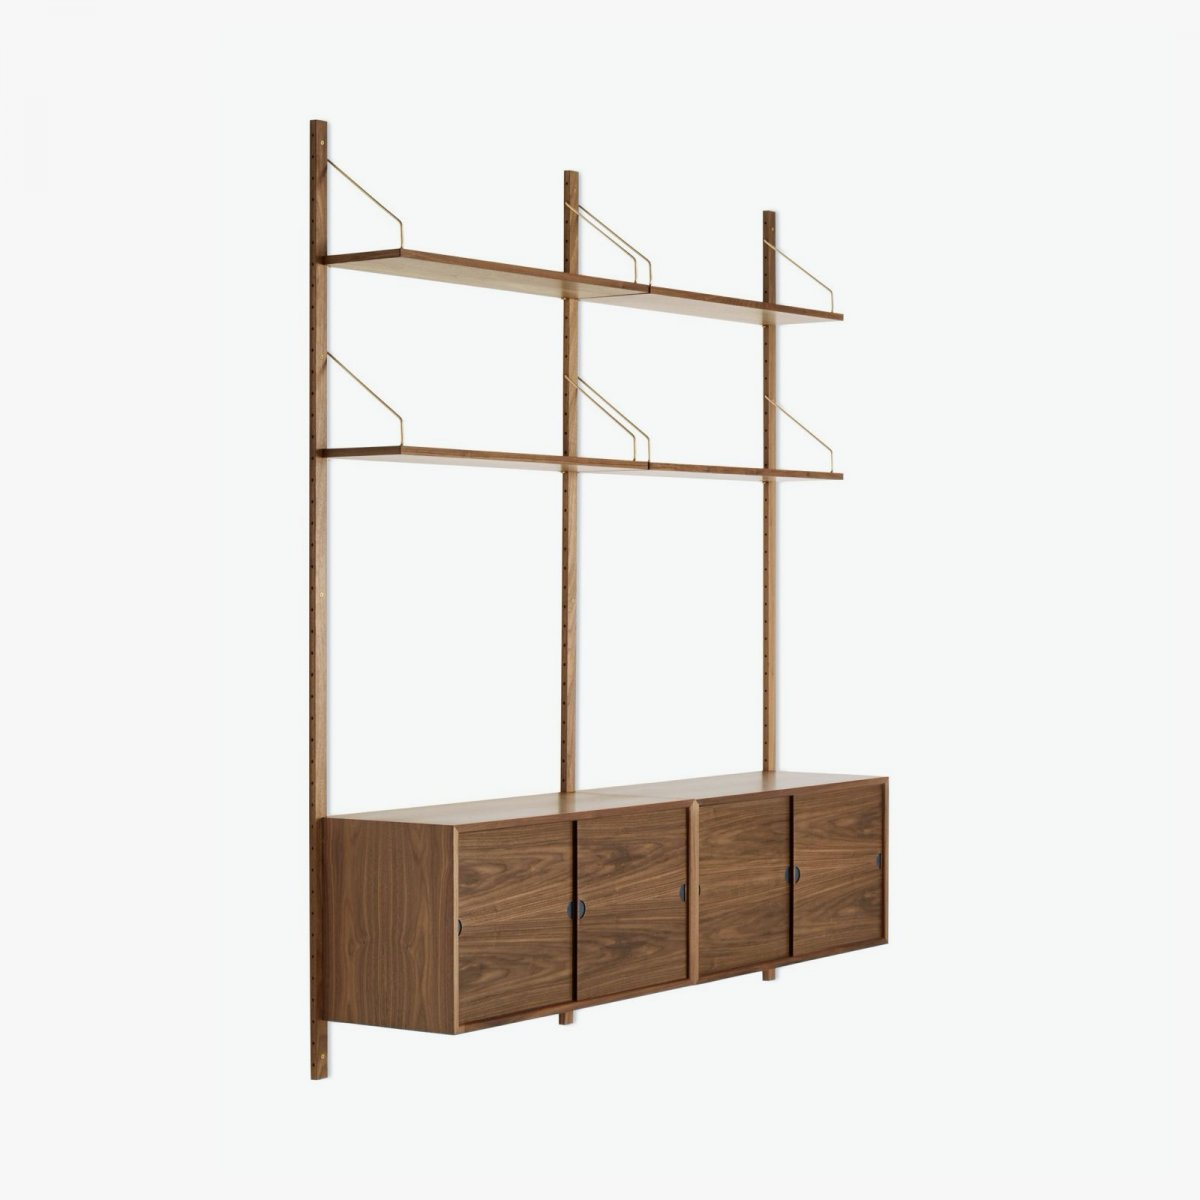 Royal System Shelving Unit B with Sliding Door Cabinets, walnut.